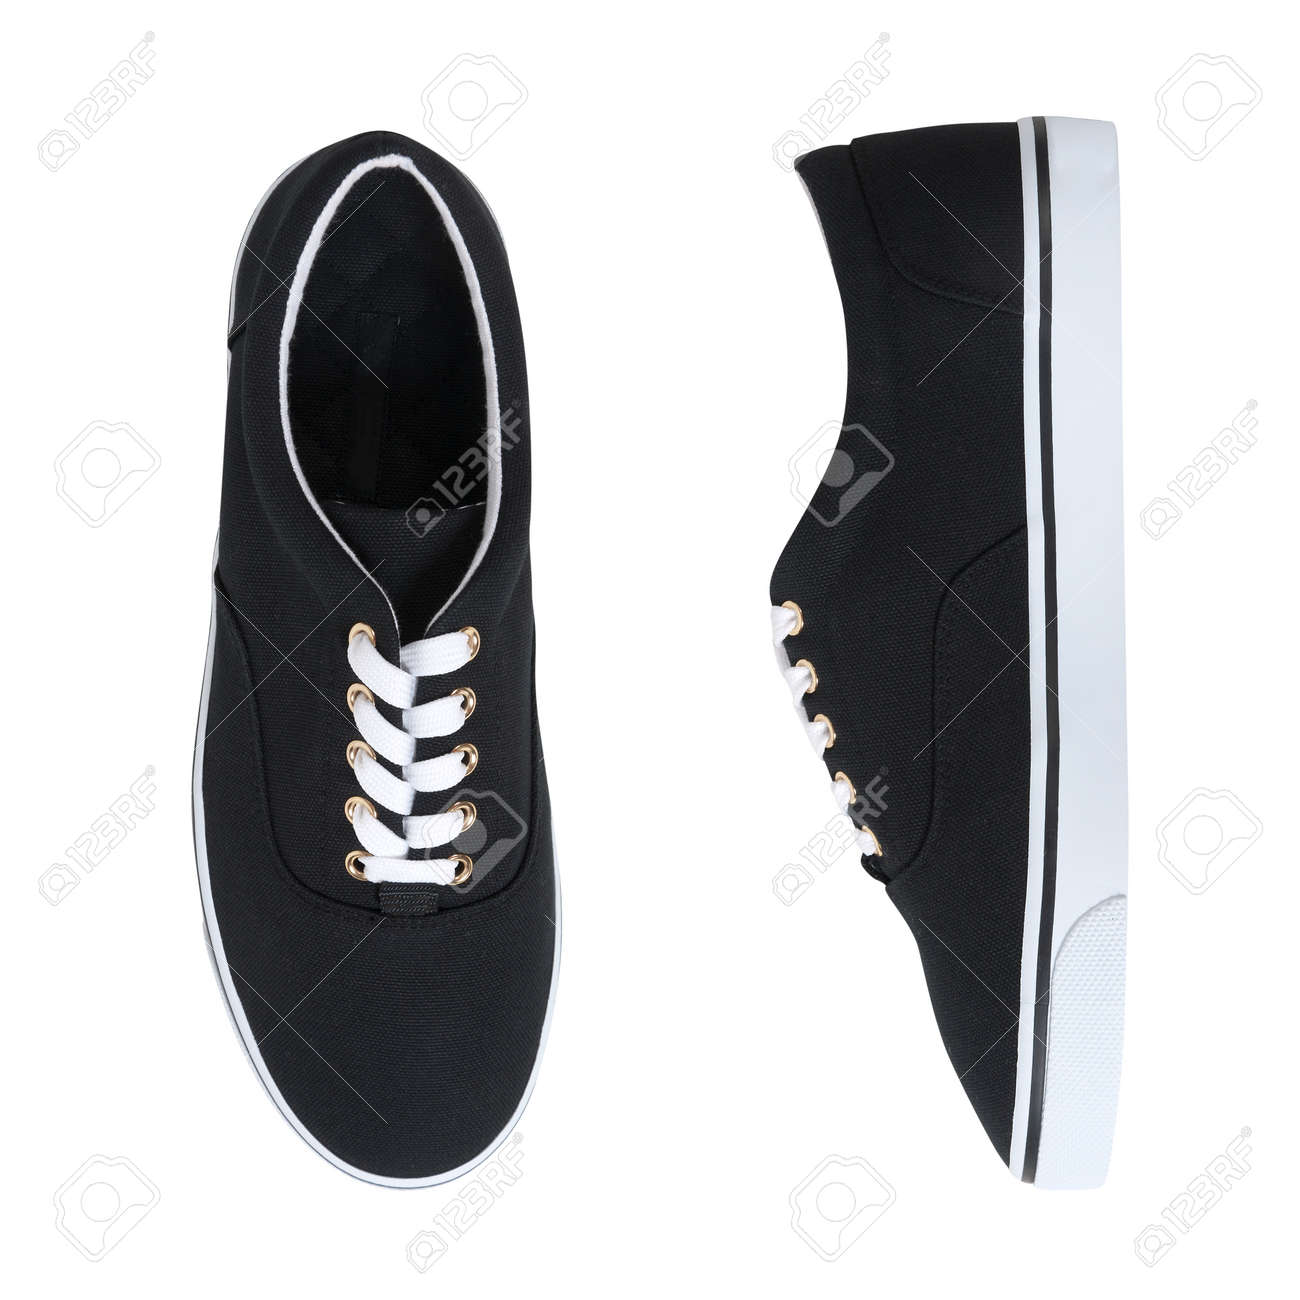 black sneakers with white soles